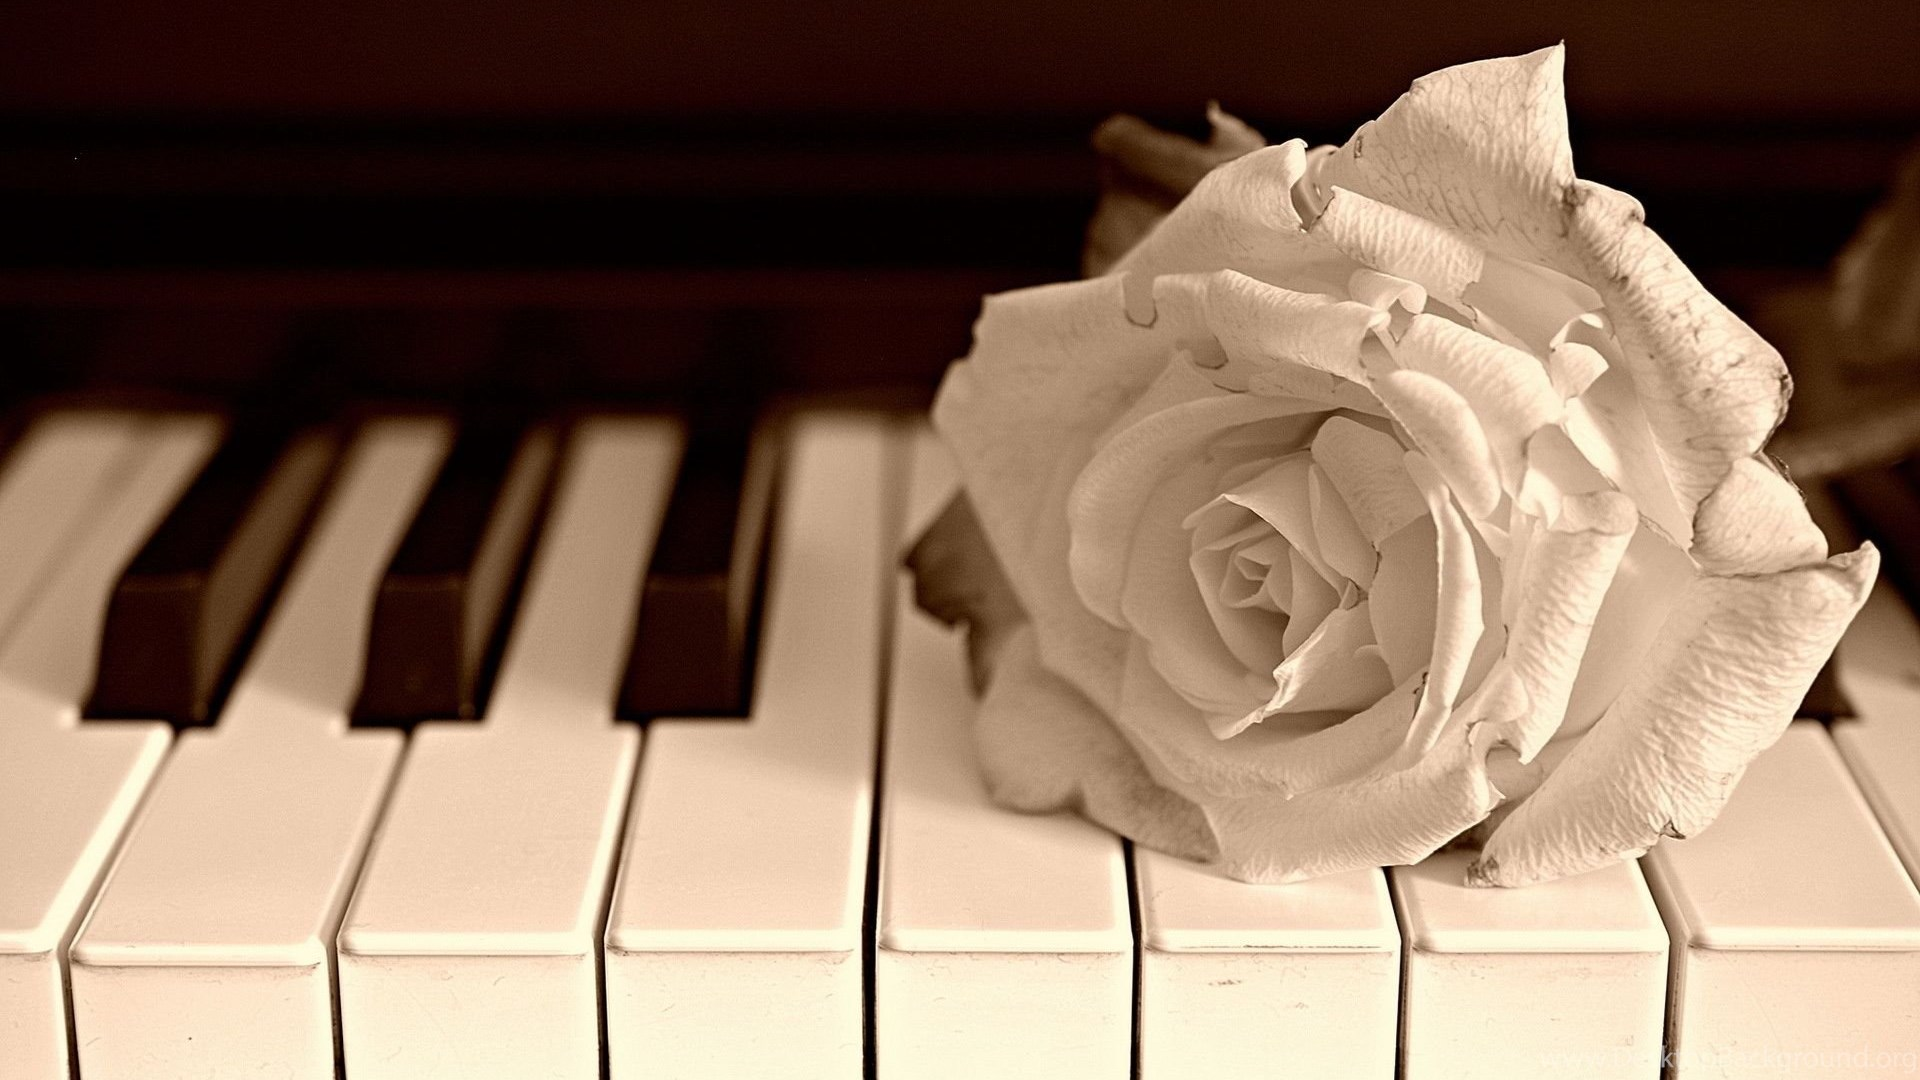 Download Piano Wallpapers Hd 2454 1920x1200 Px High Resolution Desktop Background